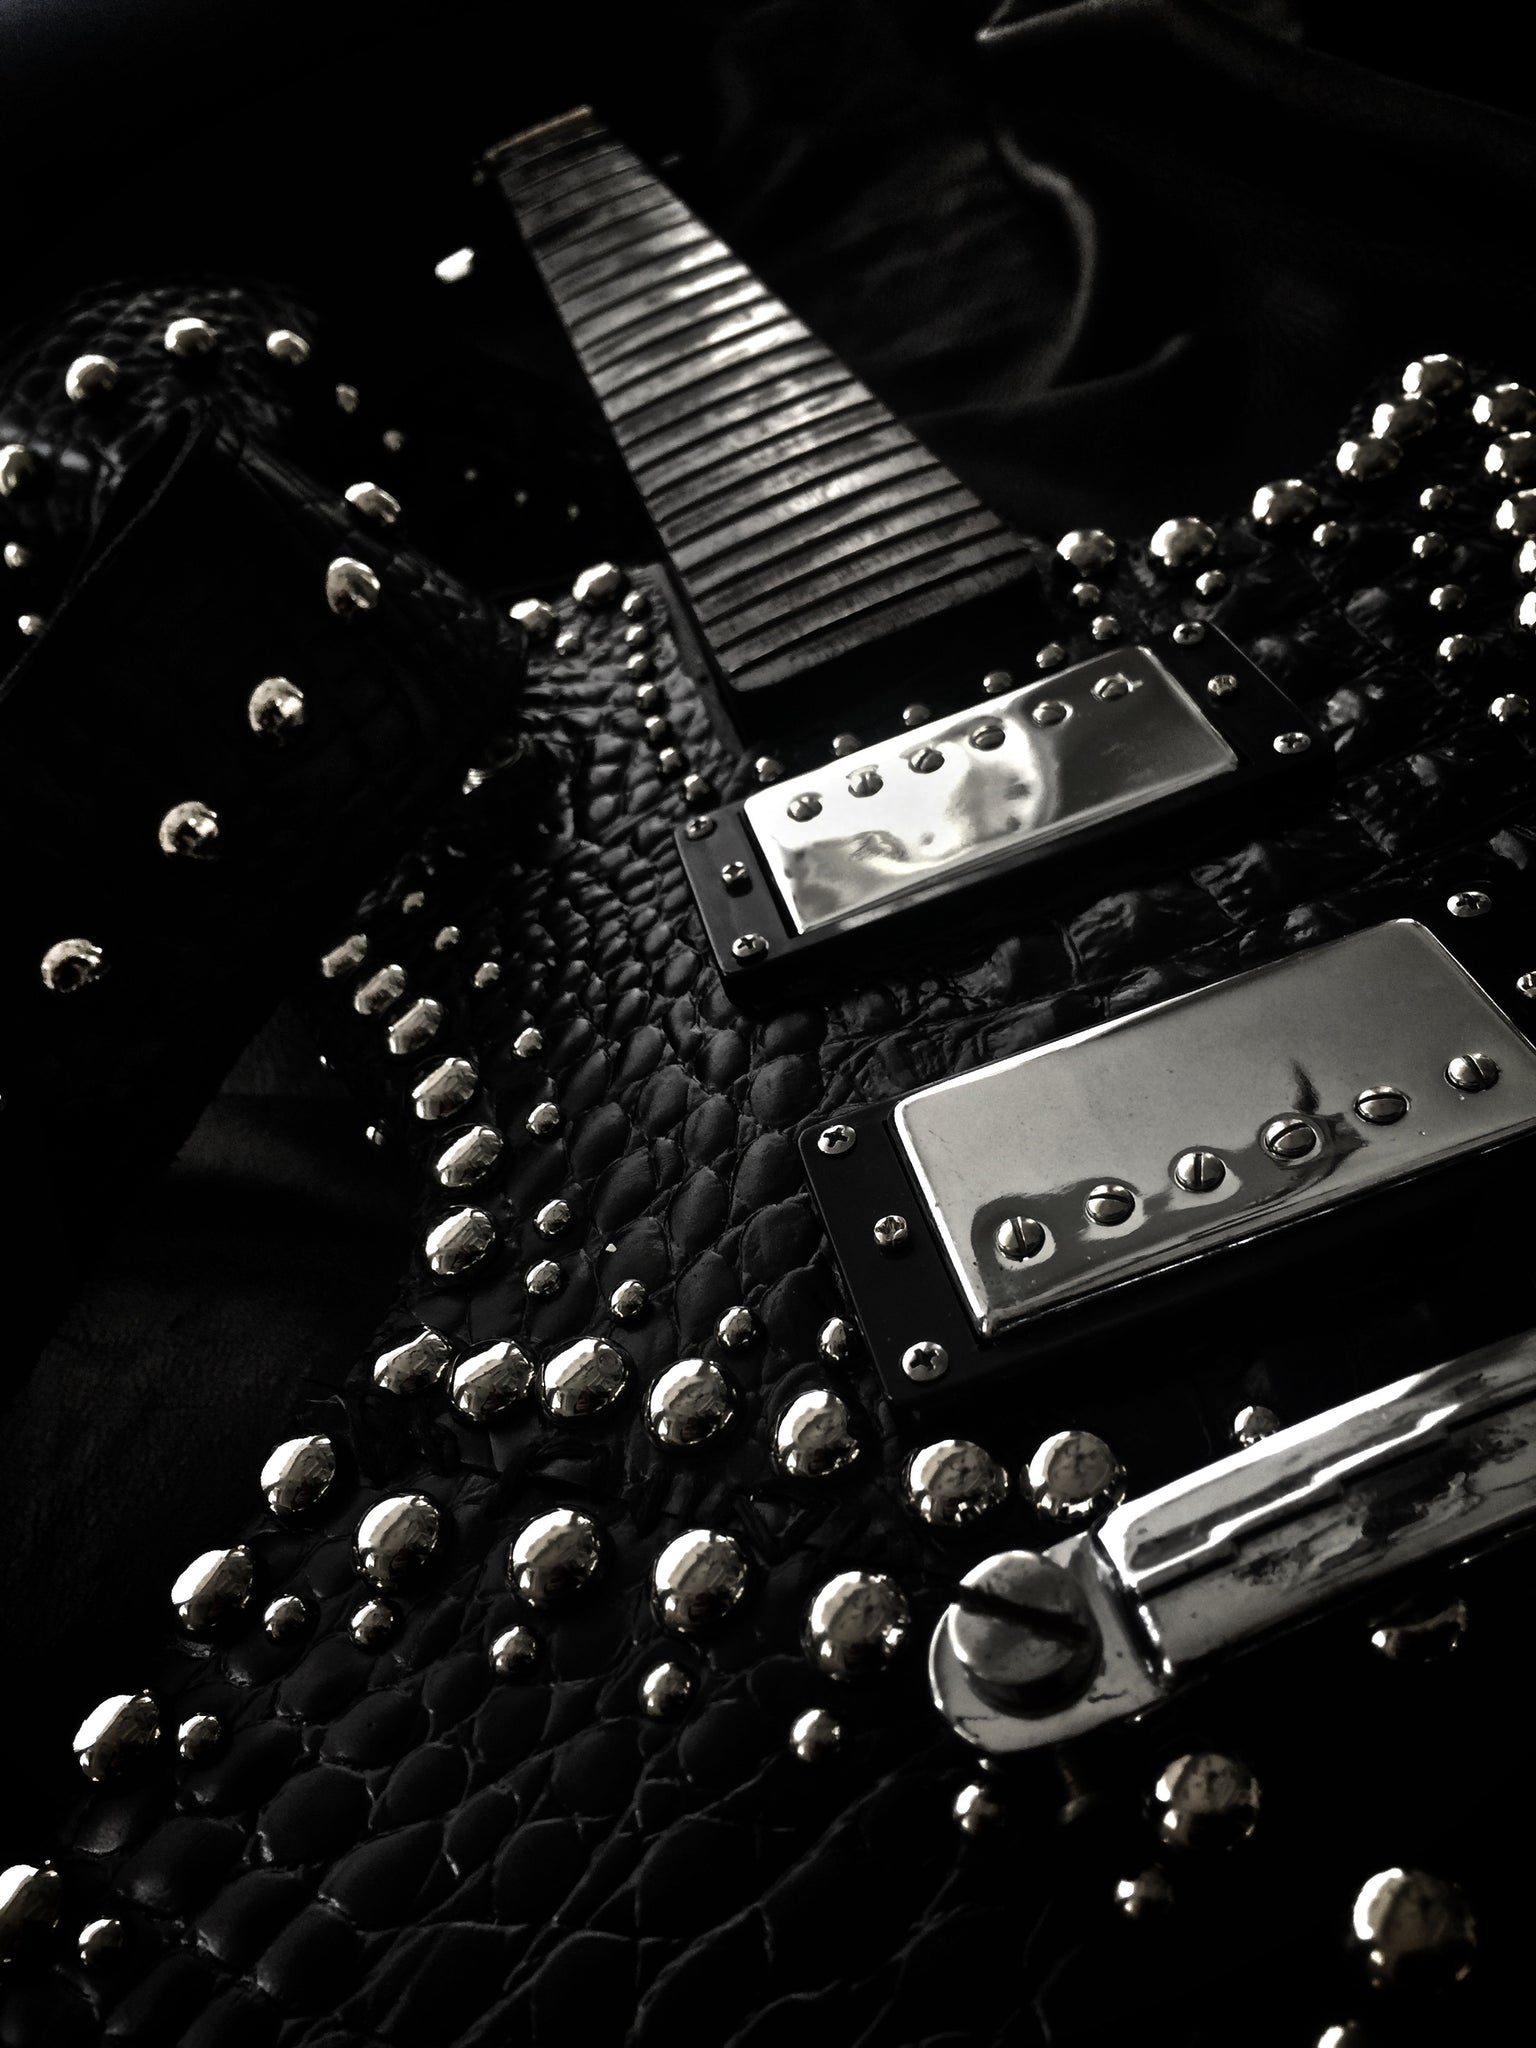 Sinistar Custom Whip Stitch Guitar Leather - CONTACT FOR INQUIRY